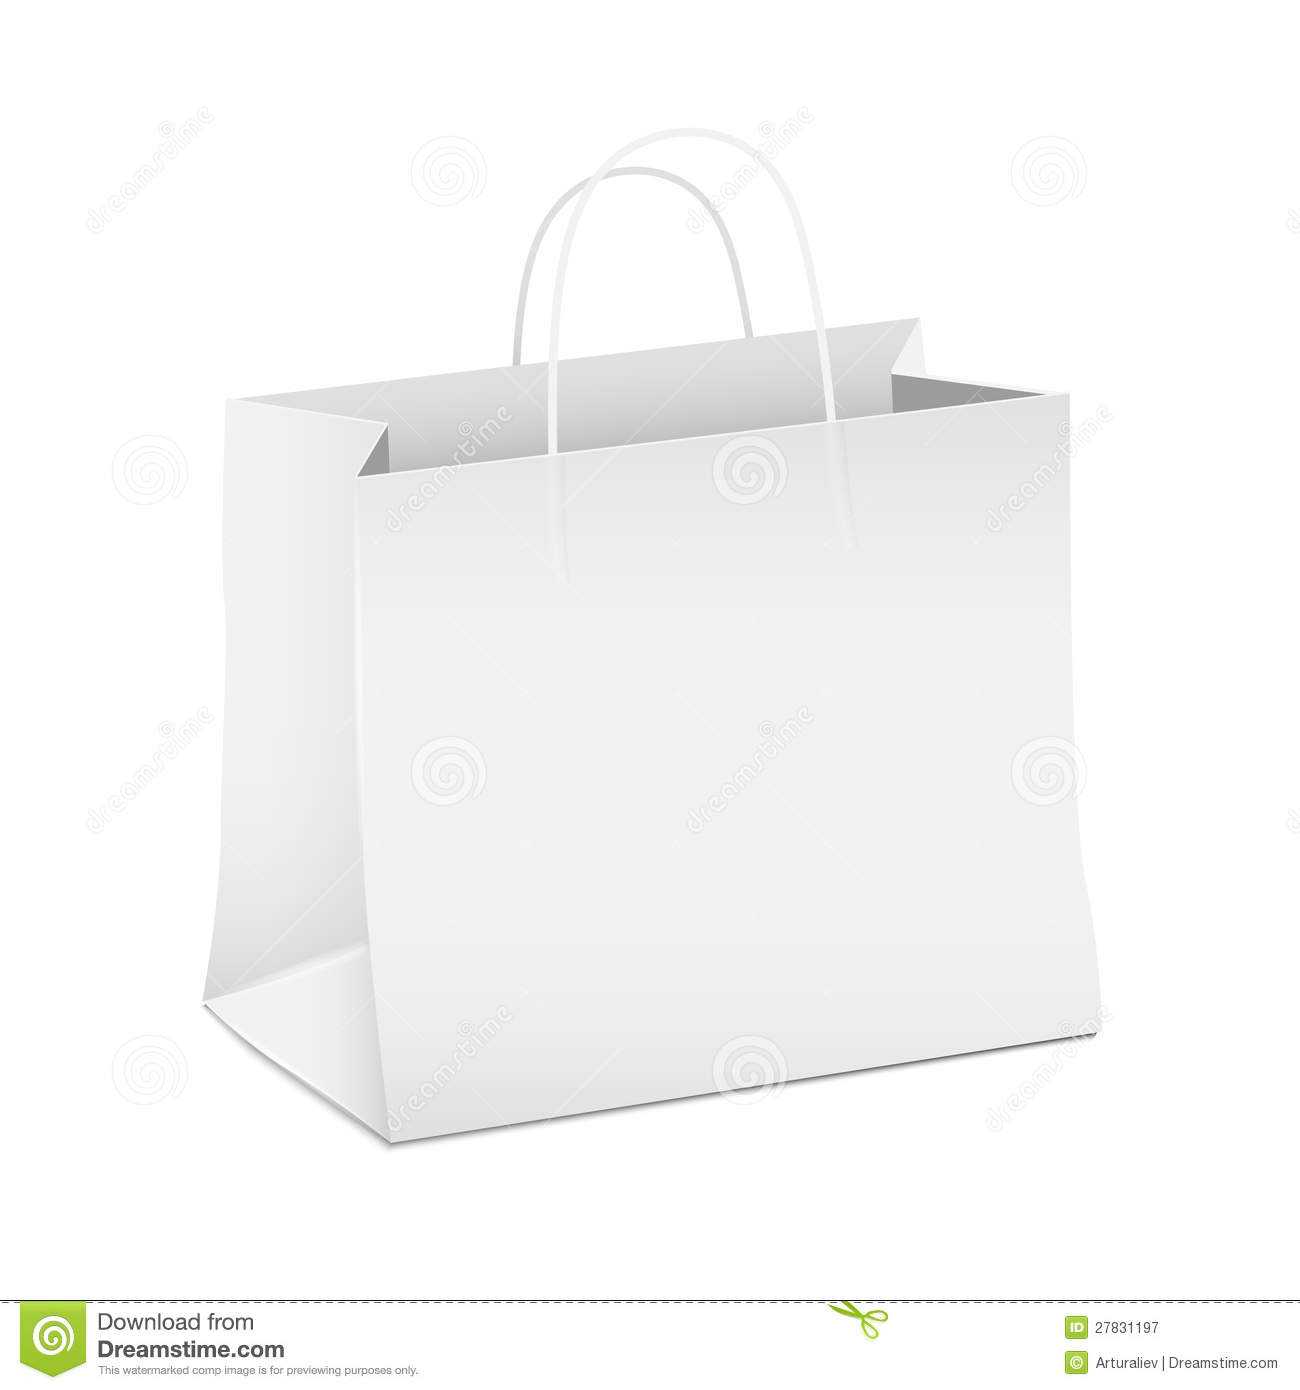 Empty White Shopping Paper Bag Stock Vector - Illustration ...White Paper Bag Vector